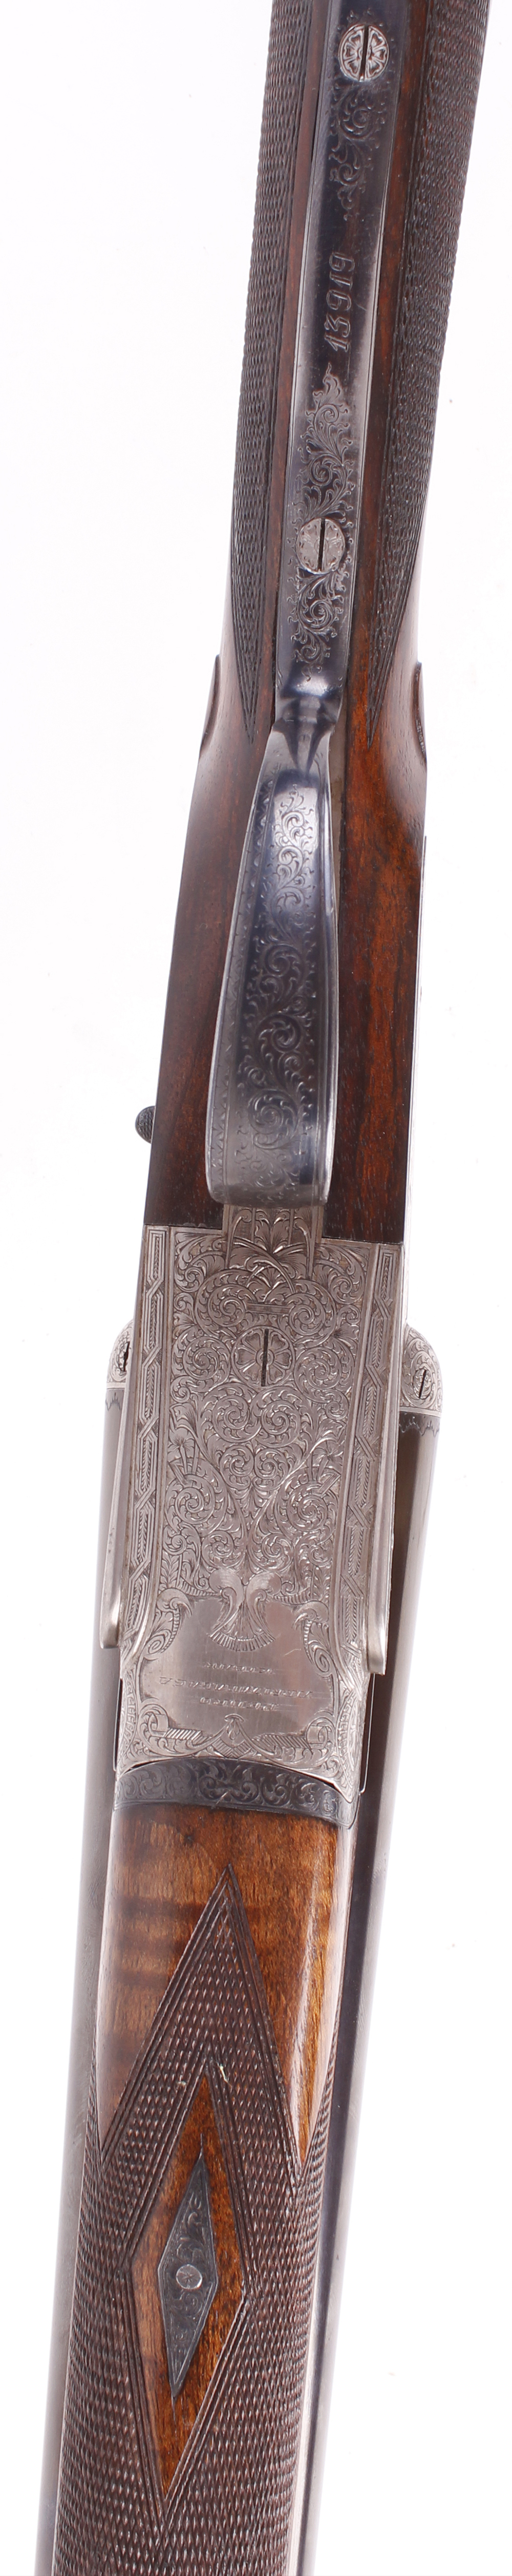 (S2) 20 bore self opening sidelock ejector by Pedro Arrizabalaga, with 26½ ins chopper lump barrels, - Image 9 of 22